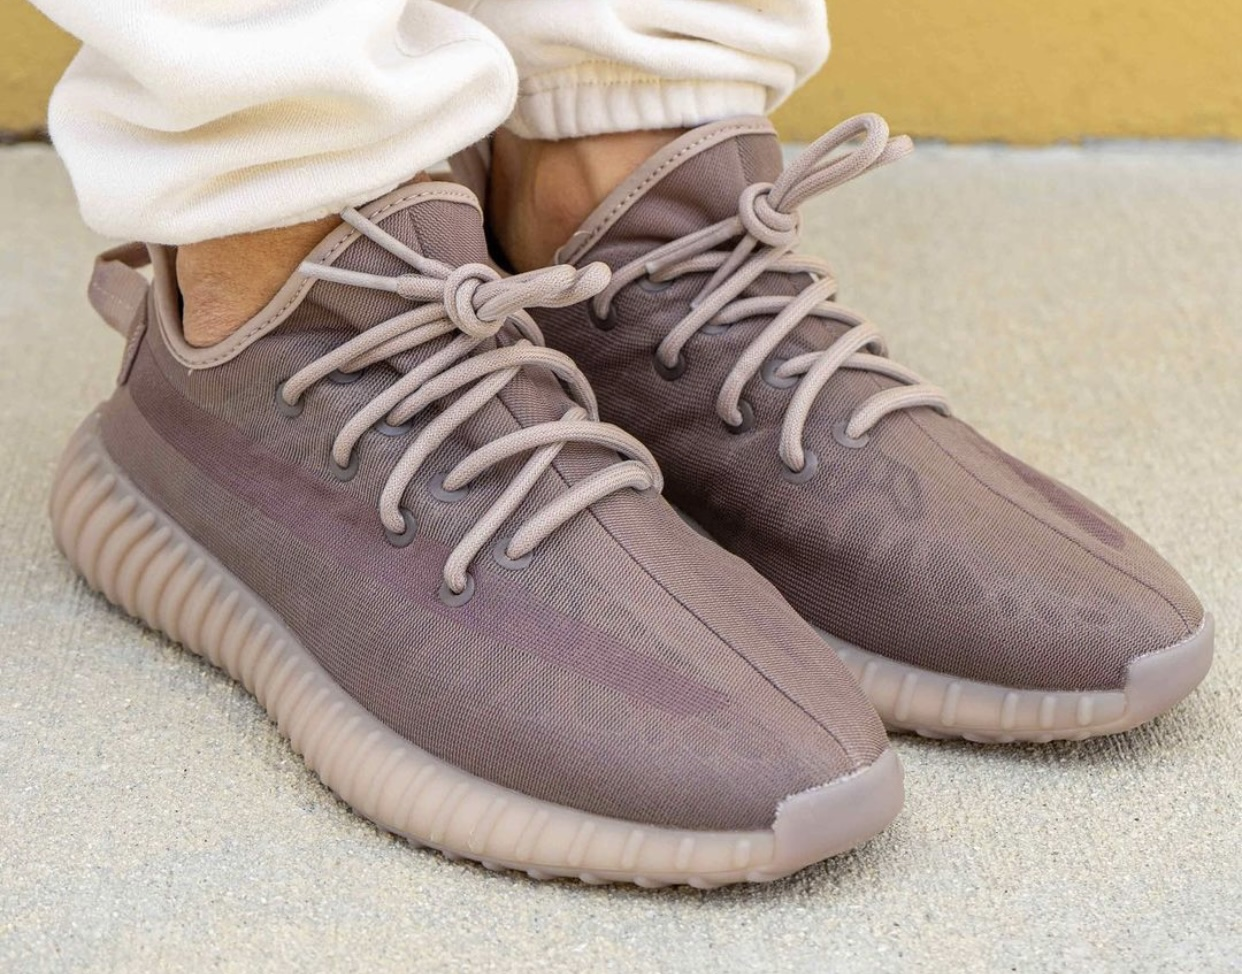 adidas Yeezy Boost 350 V2 Mono Mist On-Feet